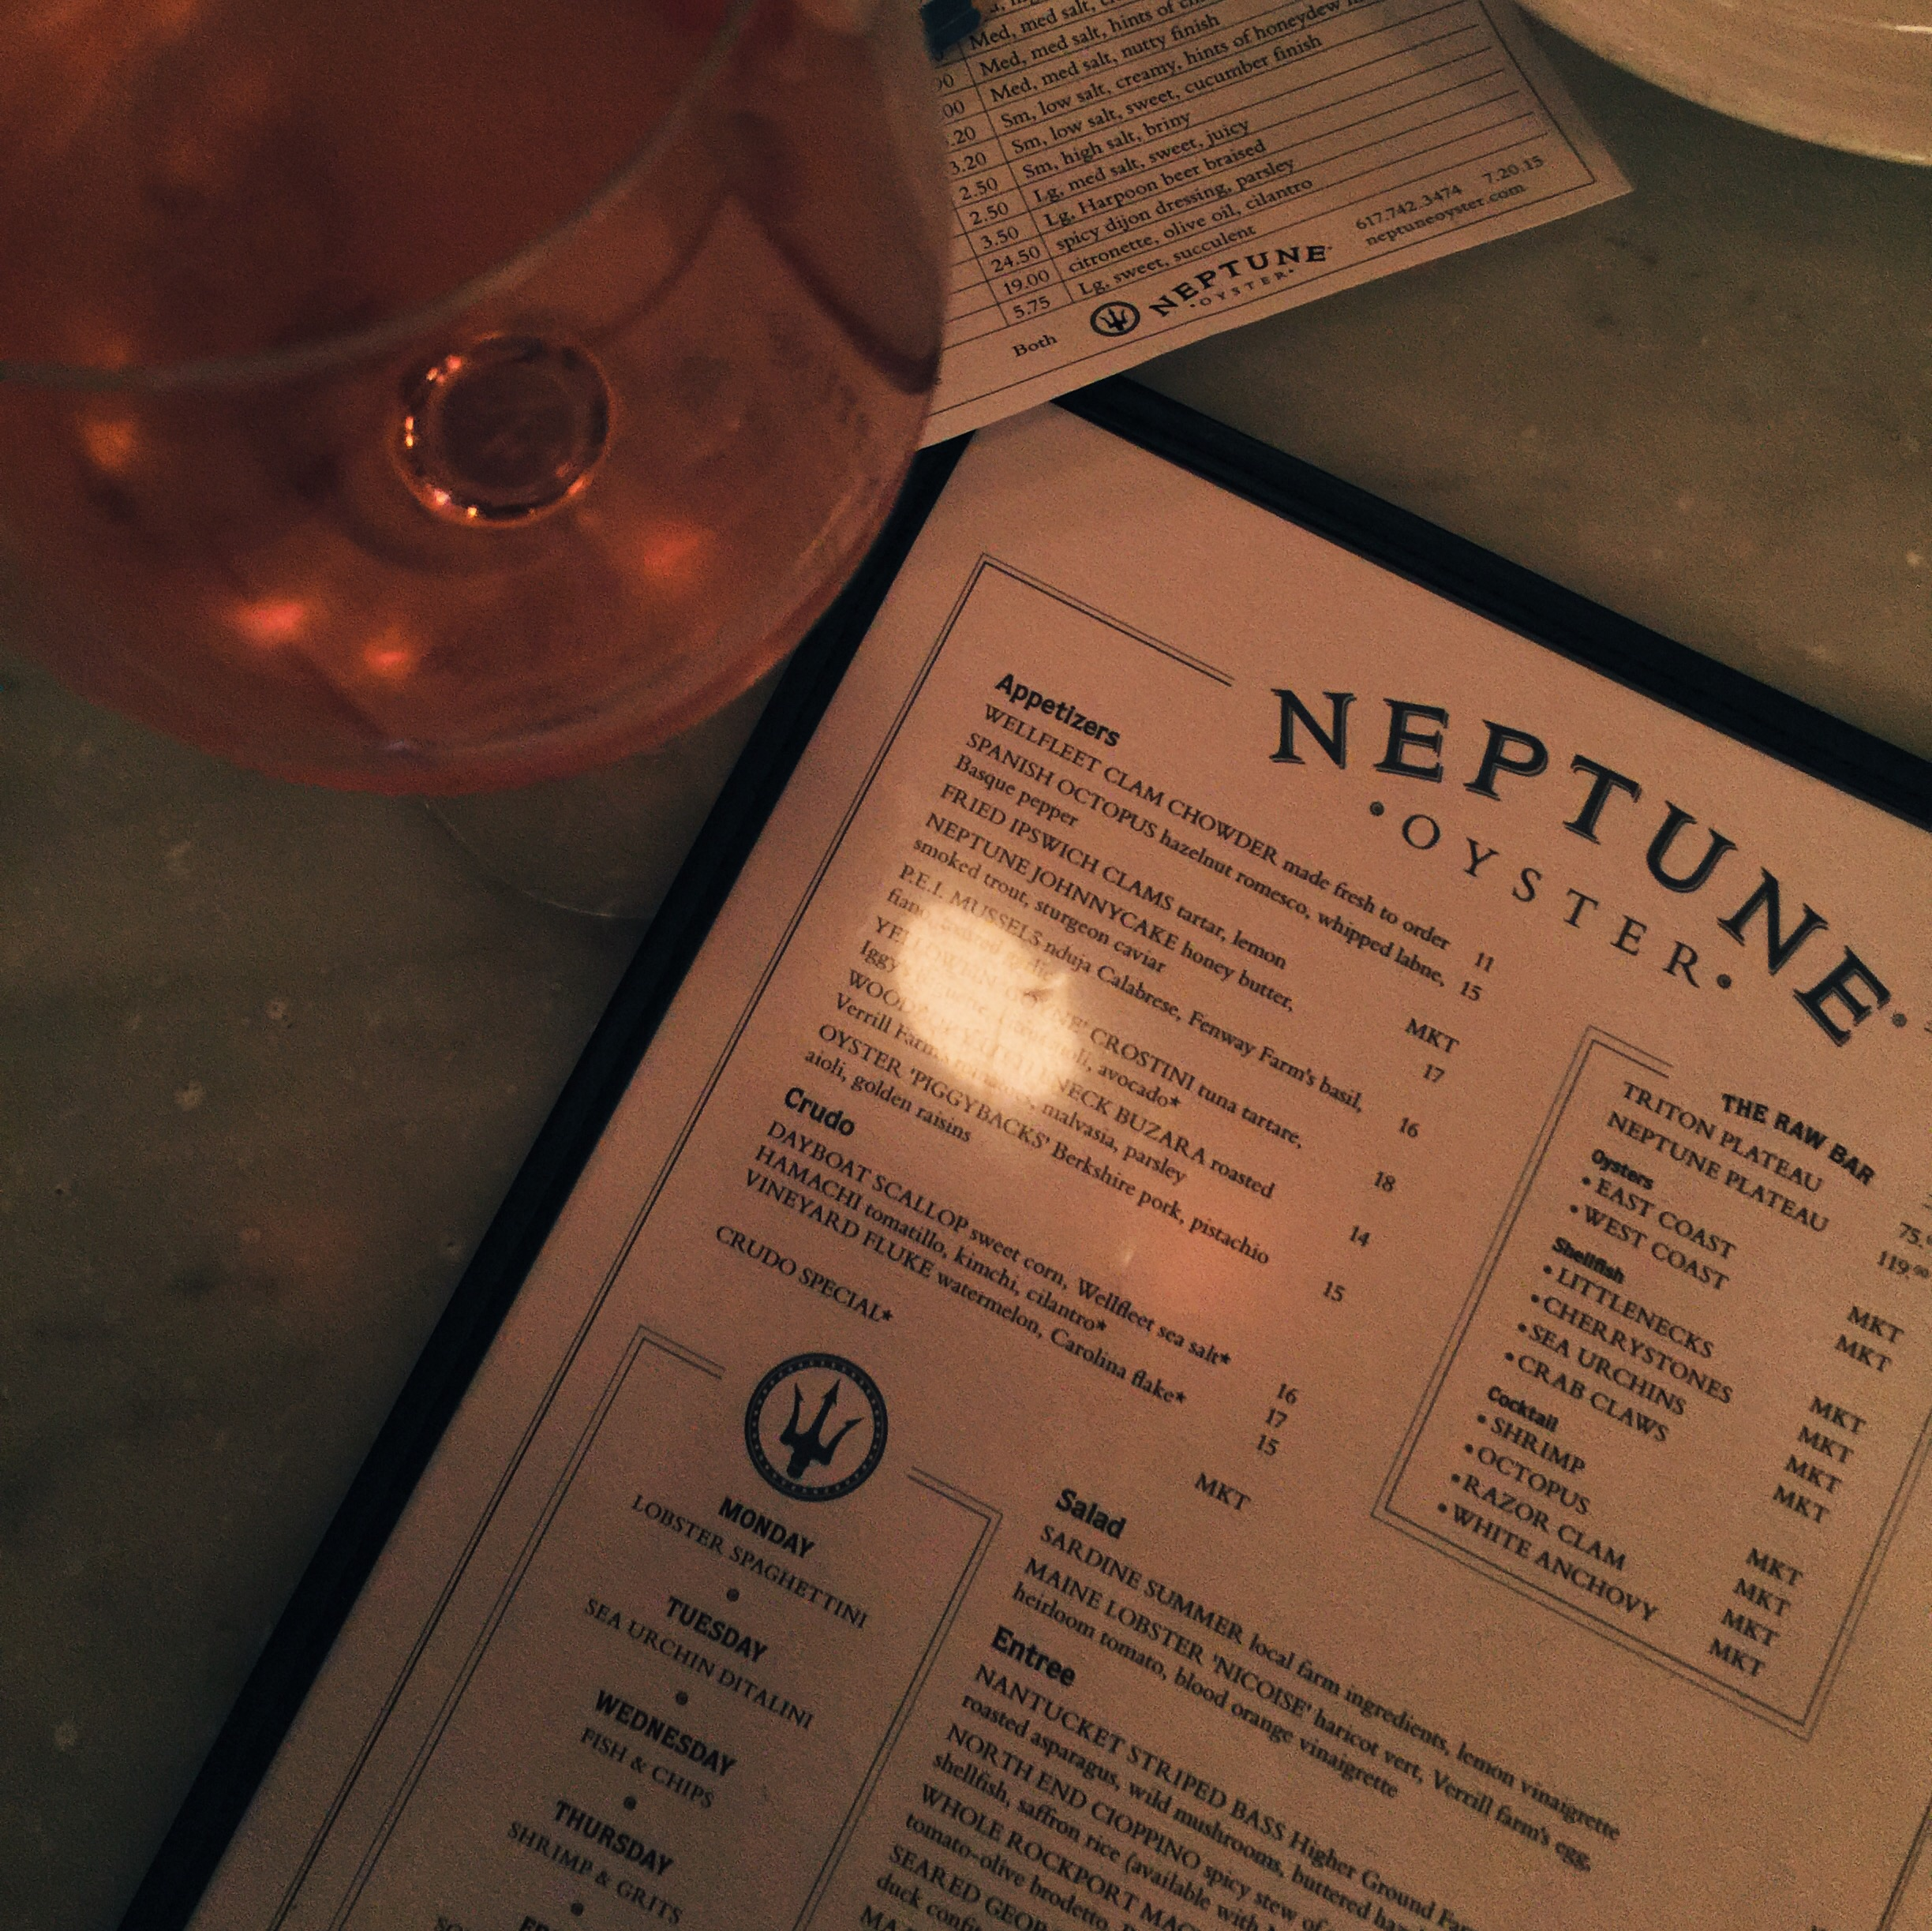 When in Boston Neptune Oyster is the place to go.